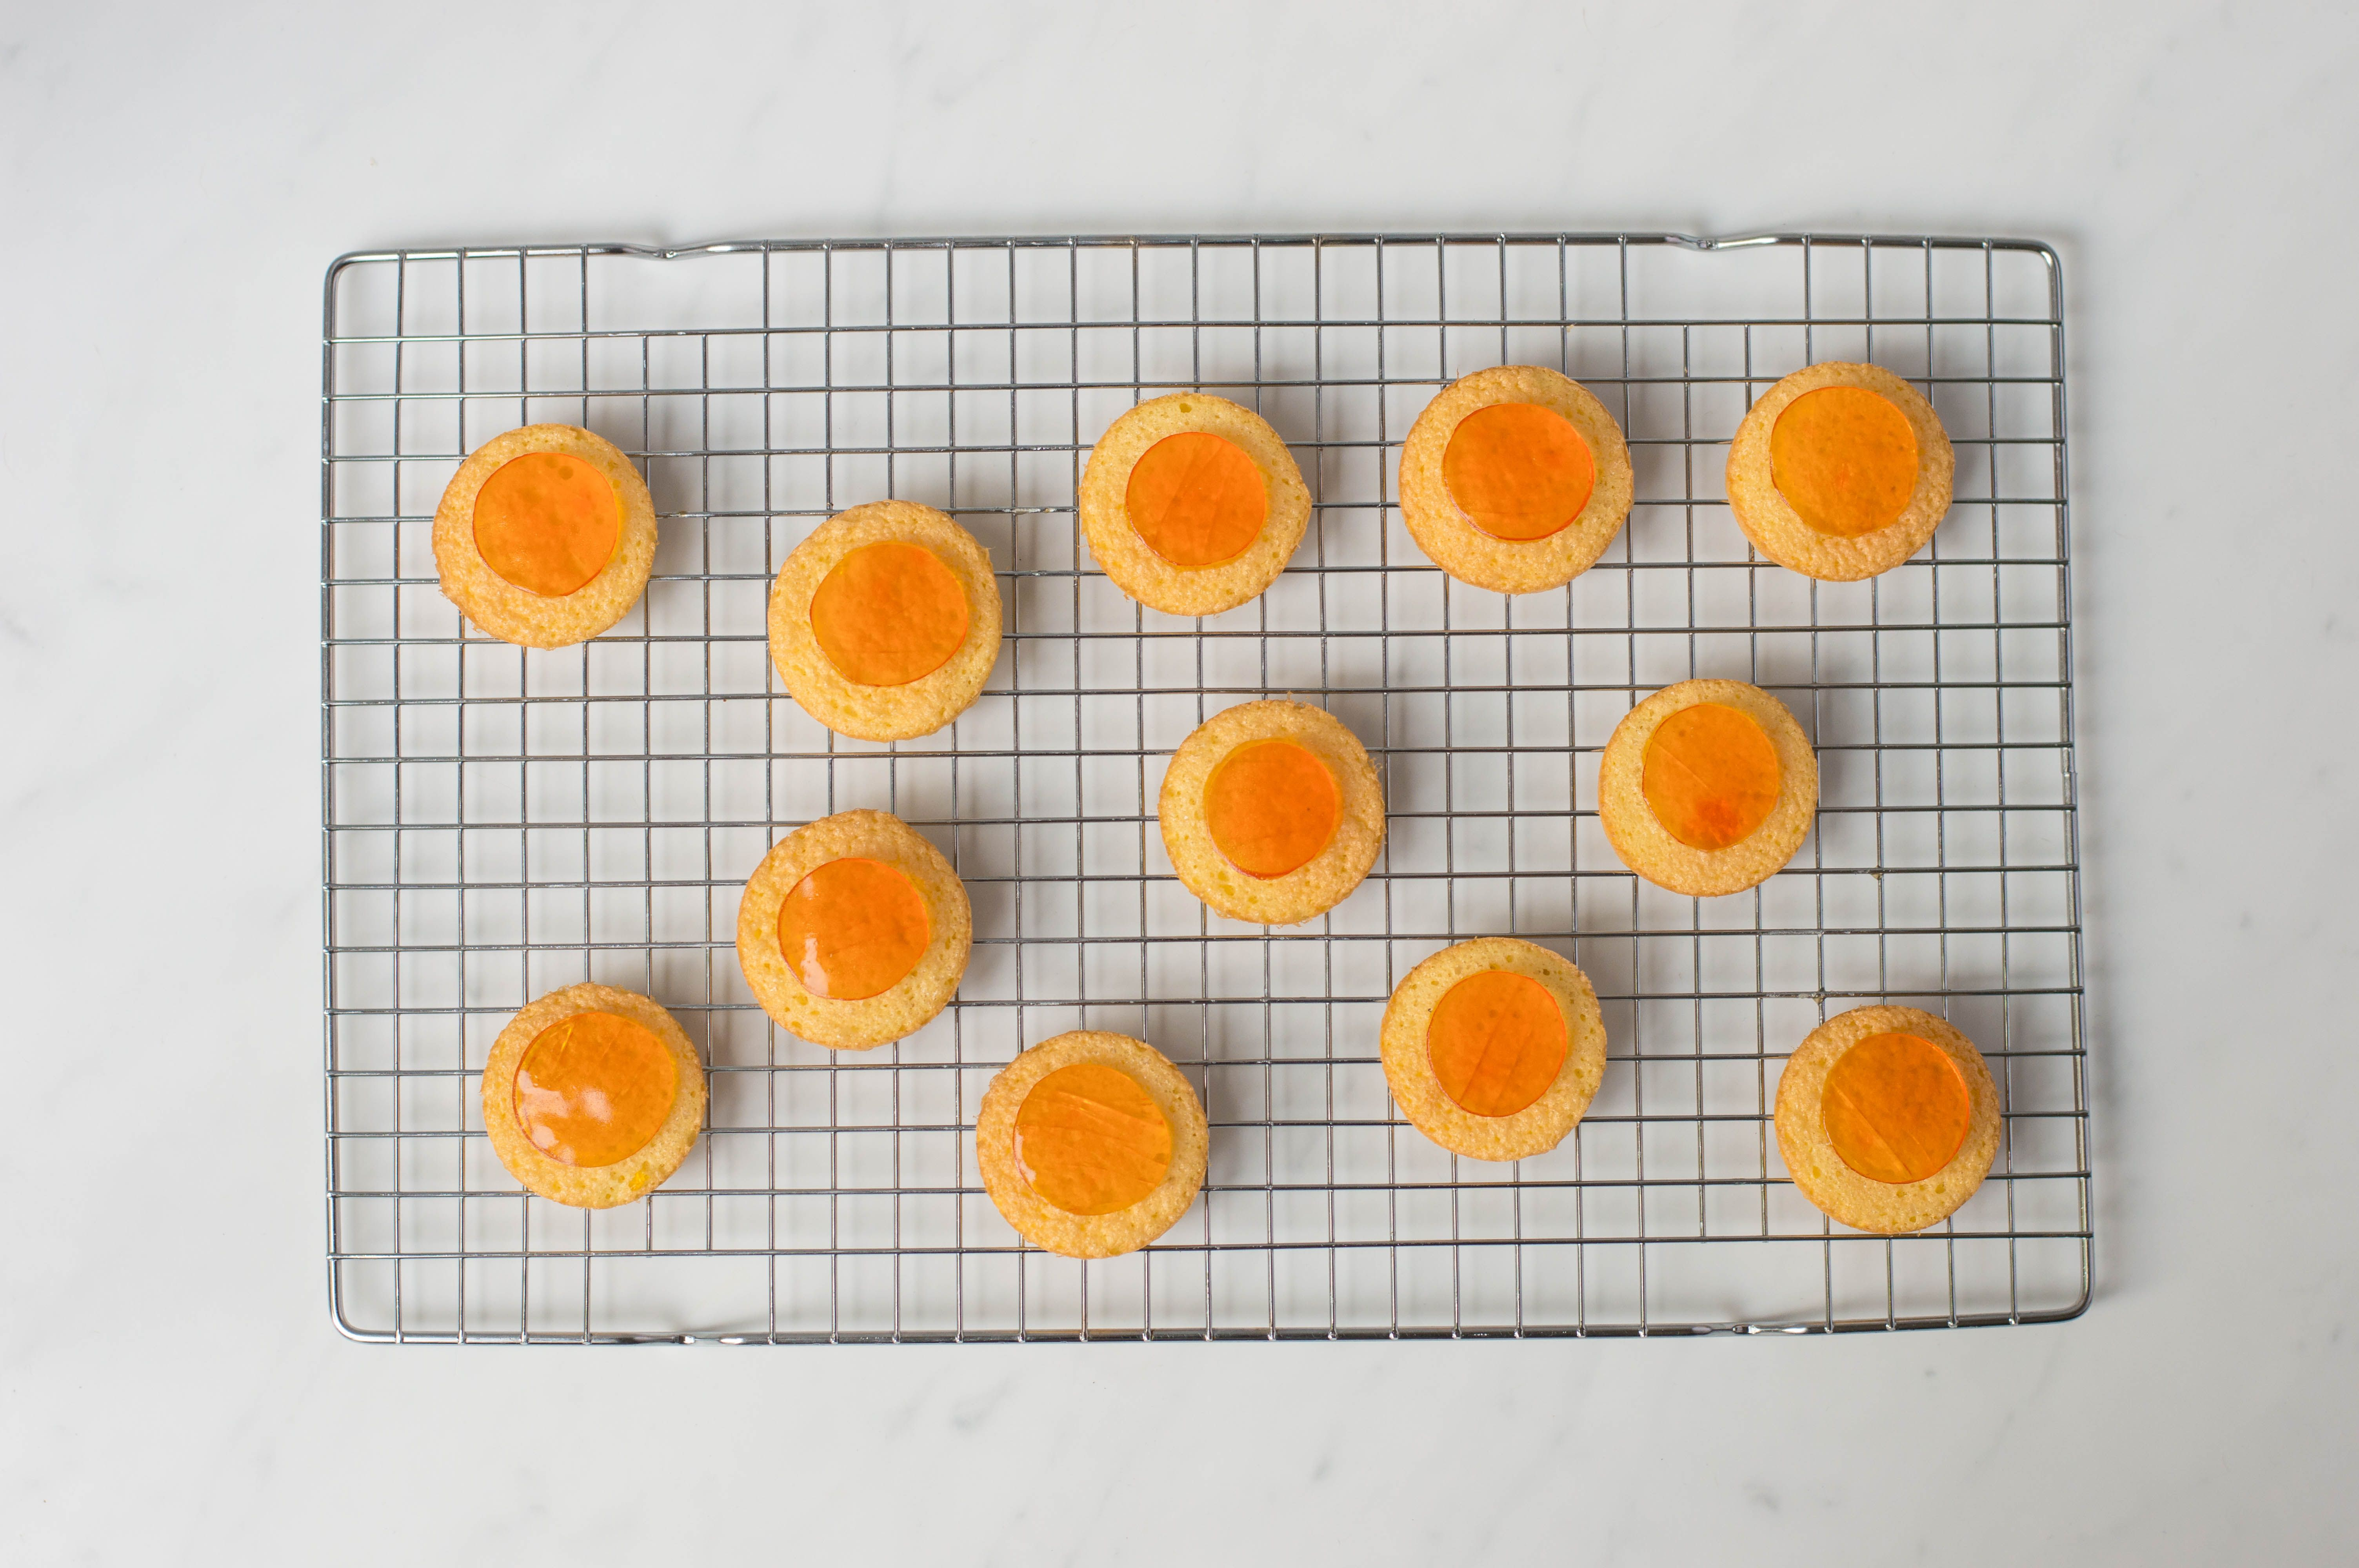 lay a disc of jelly onto cakes